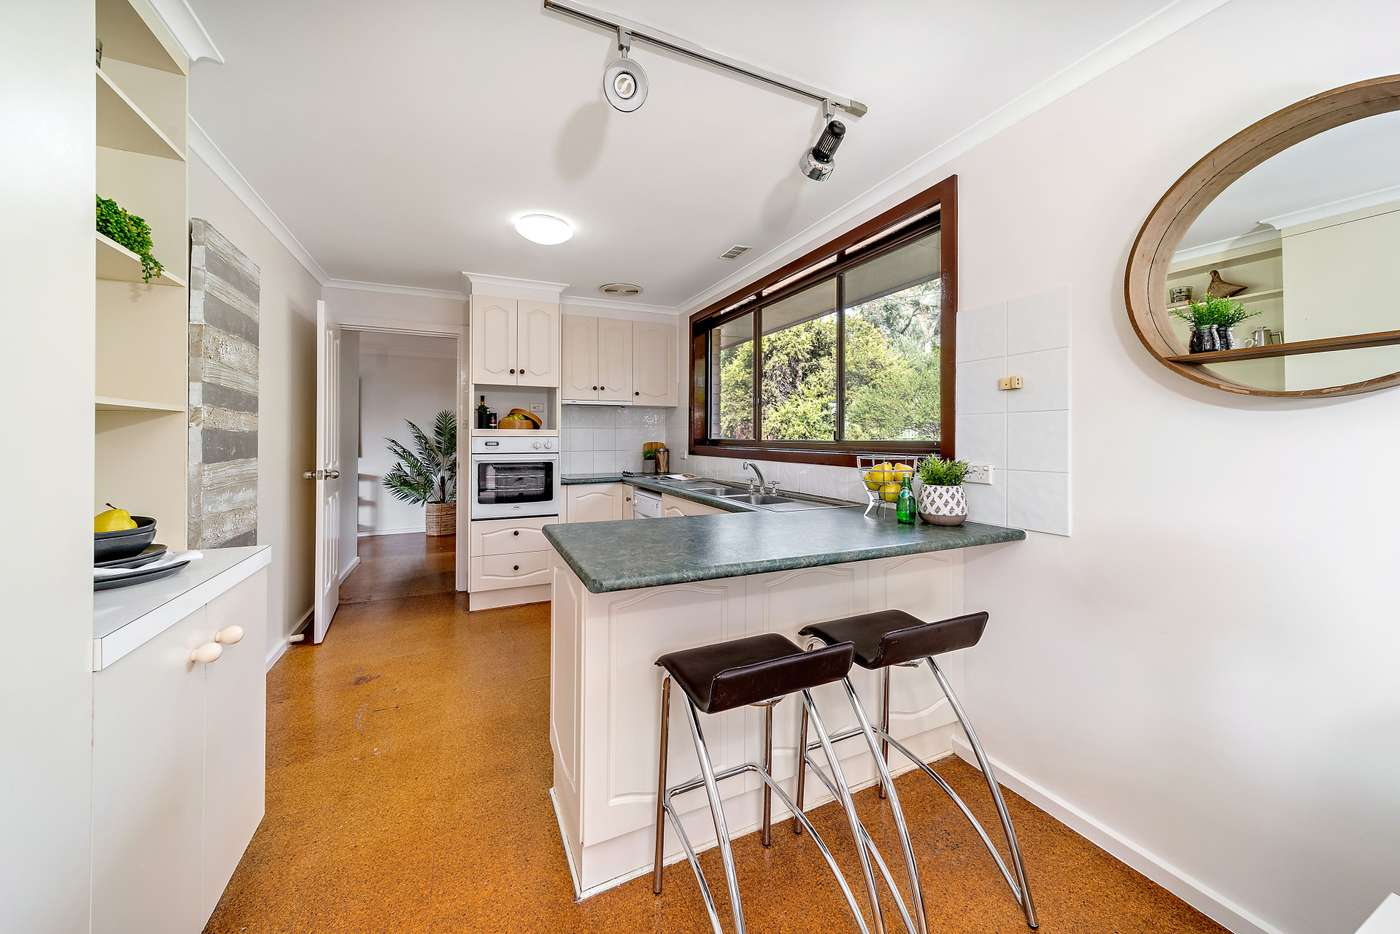 Sixth view of Homely house listing, 42 Foskett Street, Fraser ACT 2615